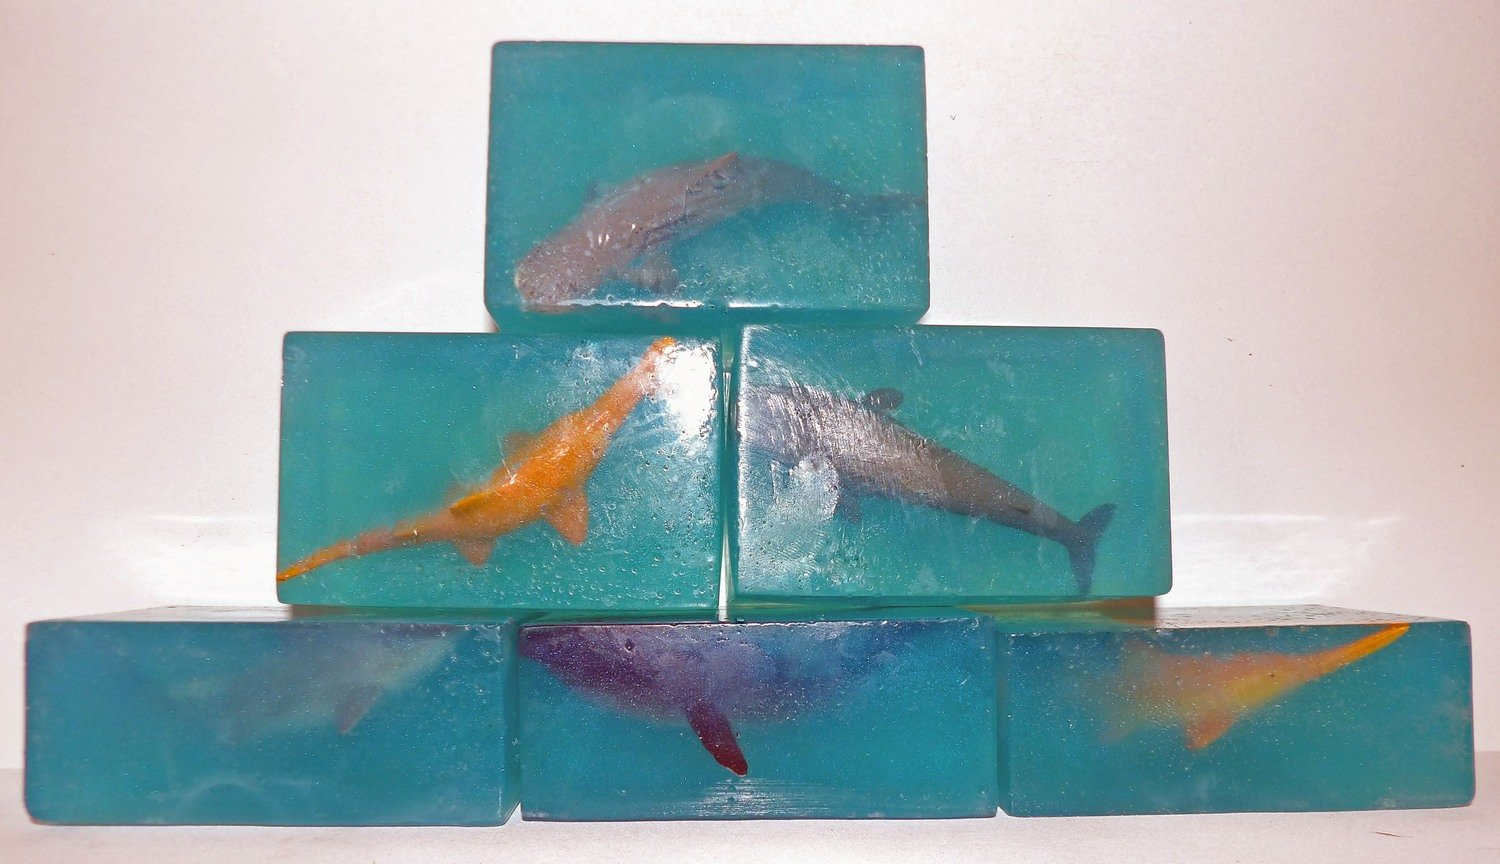 Soap - Embedded Marine Animal Soap ~ Olive Oil with Lavender Chamomile & Hint of Lime Essential Oils